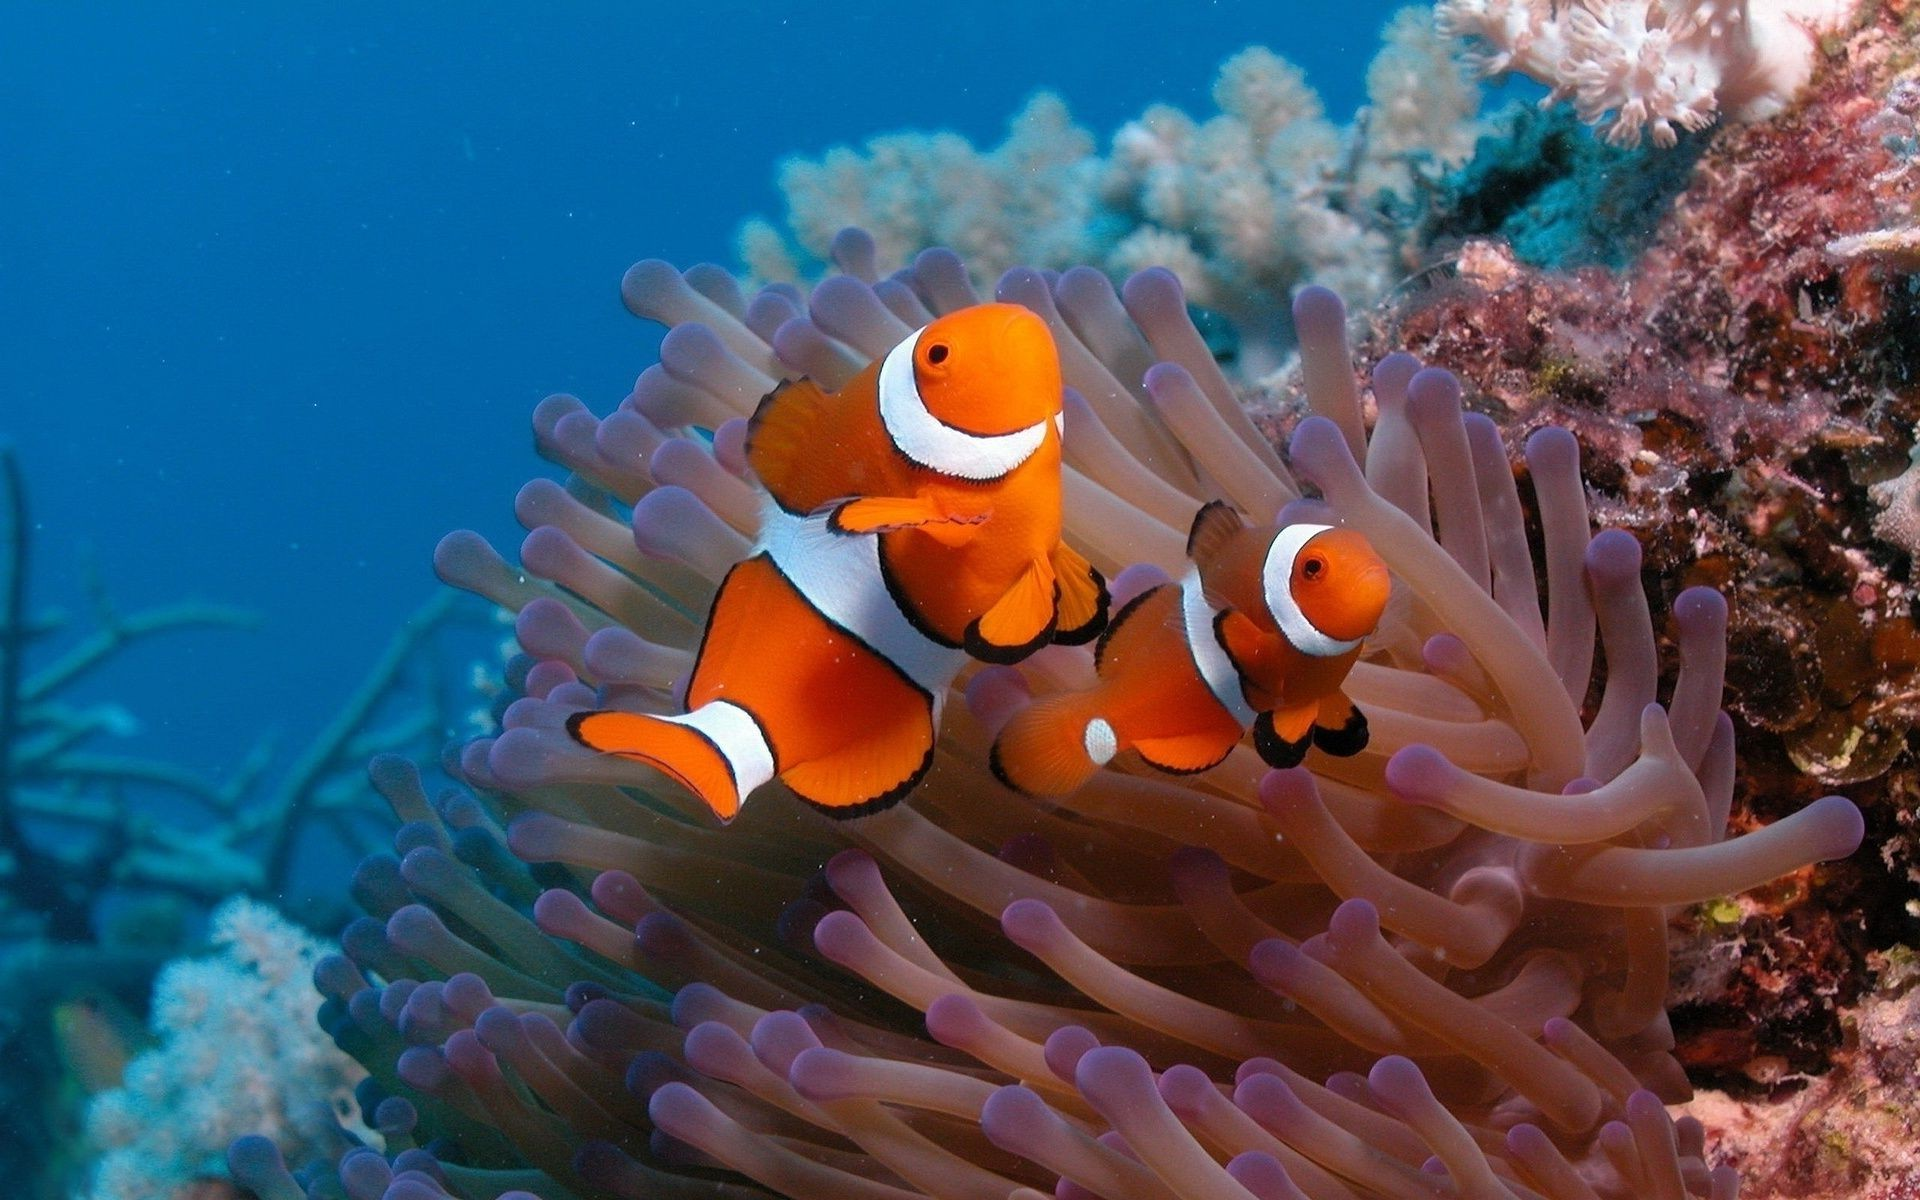 The Clown Fish The Bottom Of The Ocean Two Fish Android